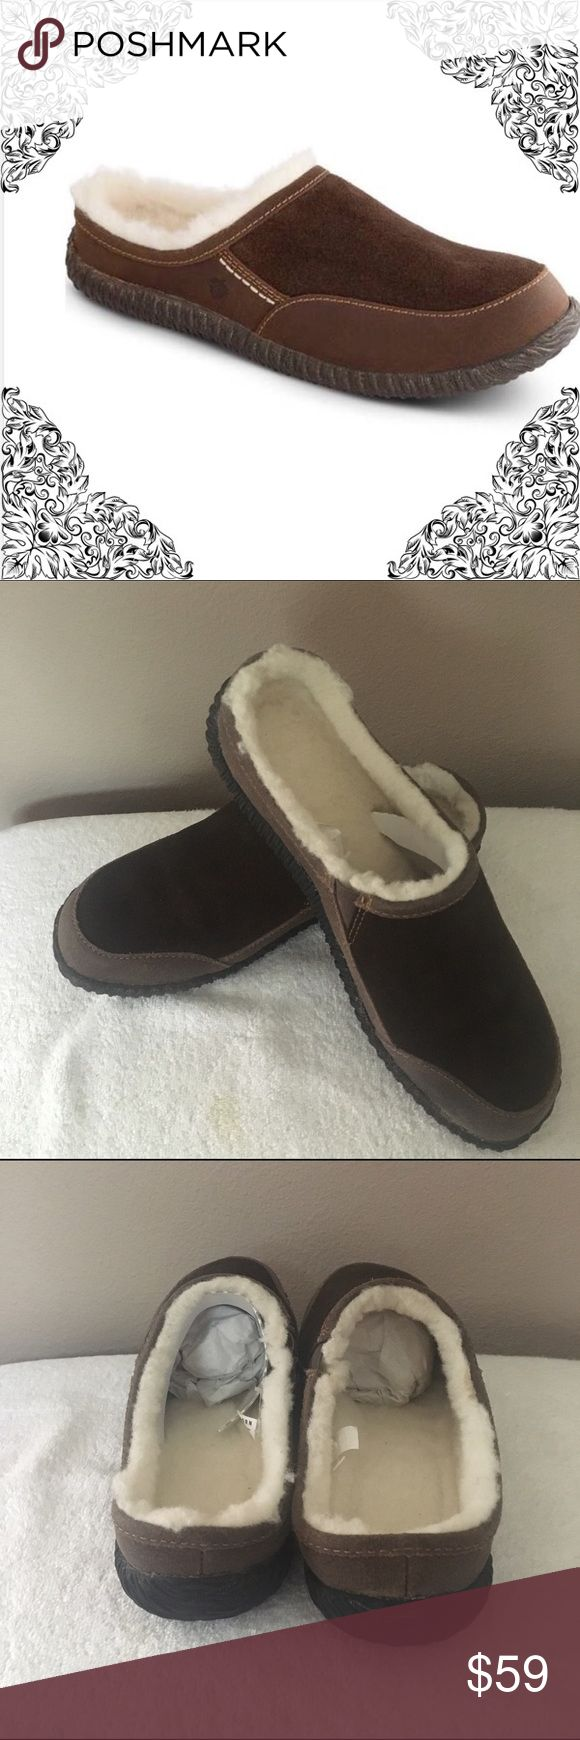 Acorn Men's Shoes Brand new chocolate color. Soft suede upper with two-tone coloring. Slip-on design. Naturally breathable shearling lining and a shearling-covered insole. Size 11 Acorn Shoes Loafers & Slip-Ons